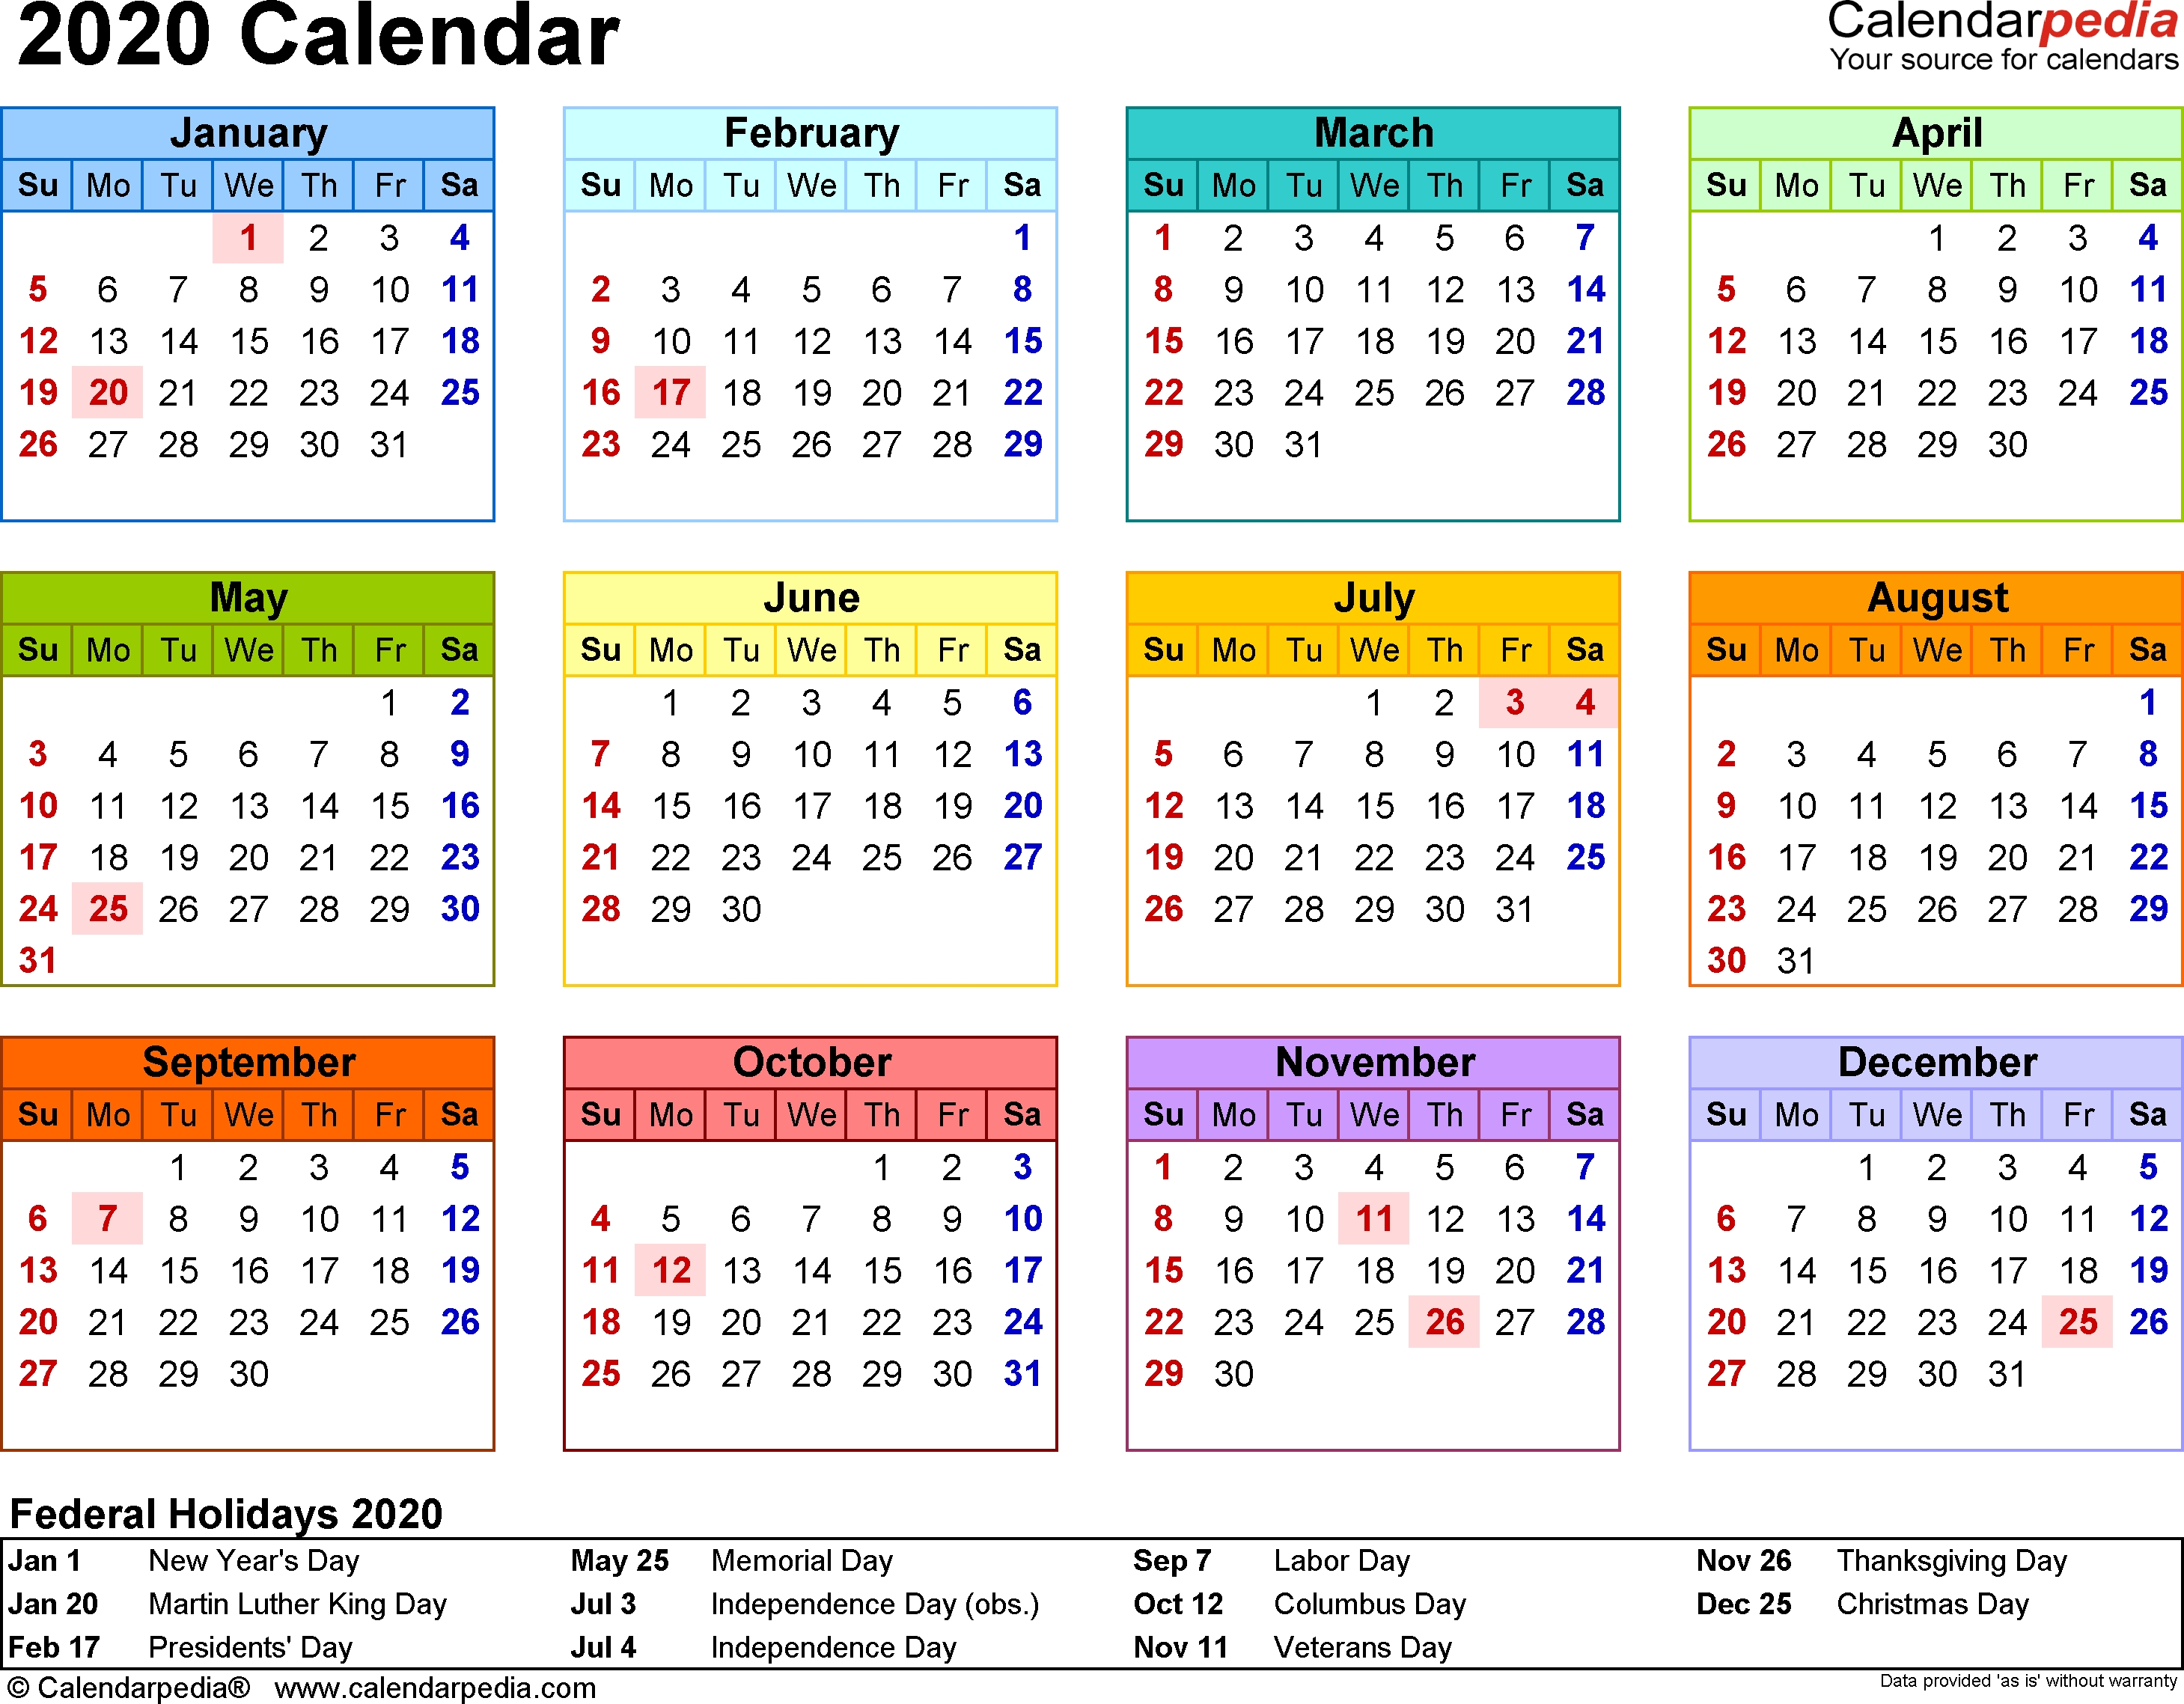 2020 Calendar - Free Printable Microsoft Word Templates throughout What Is 4-4-5 2020 Calendar